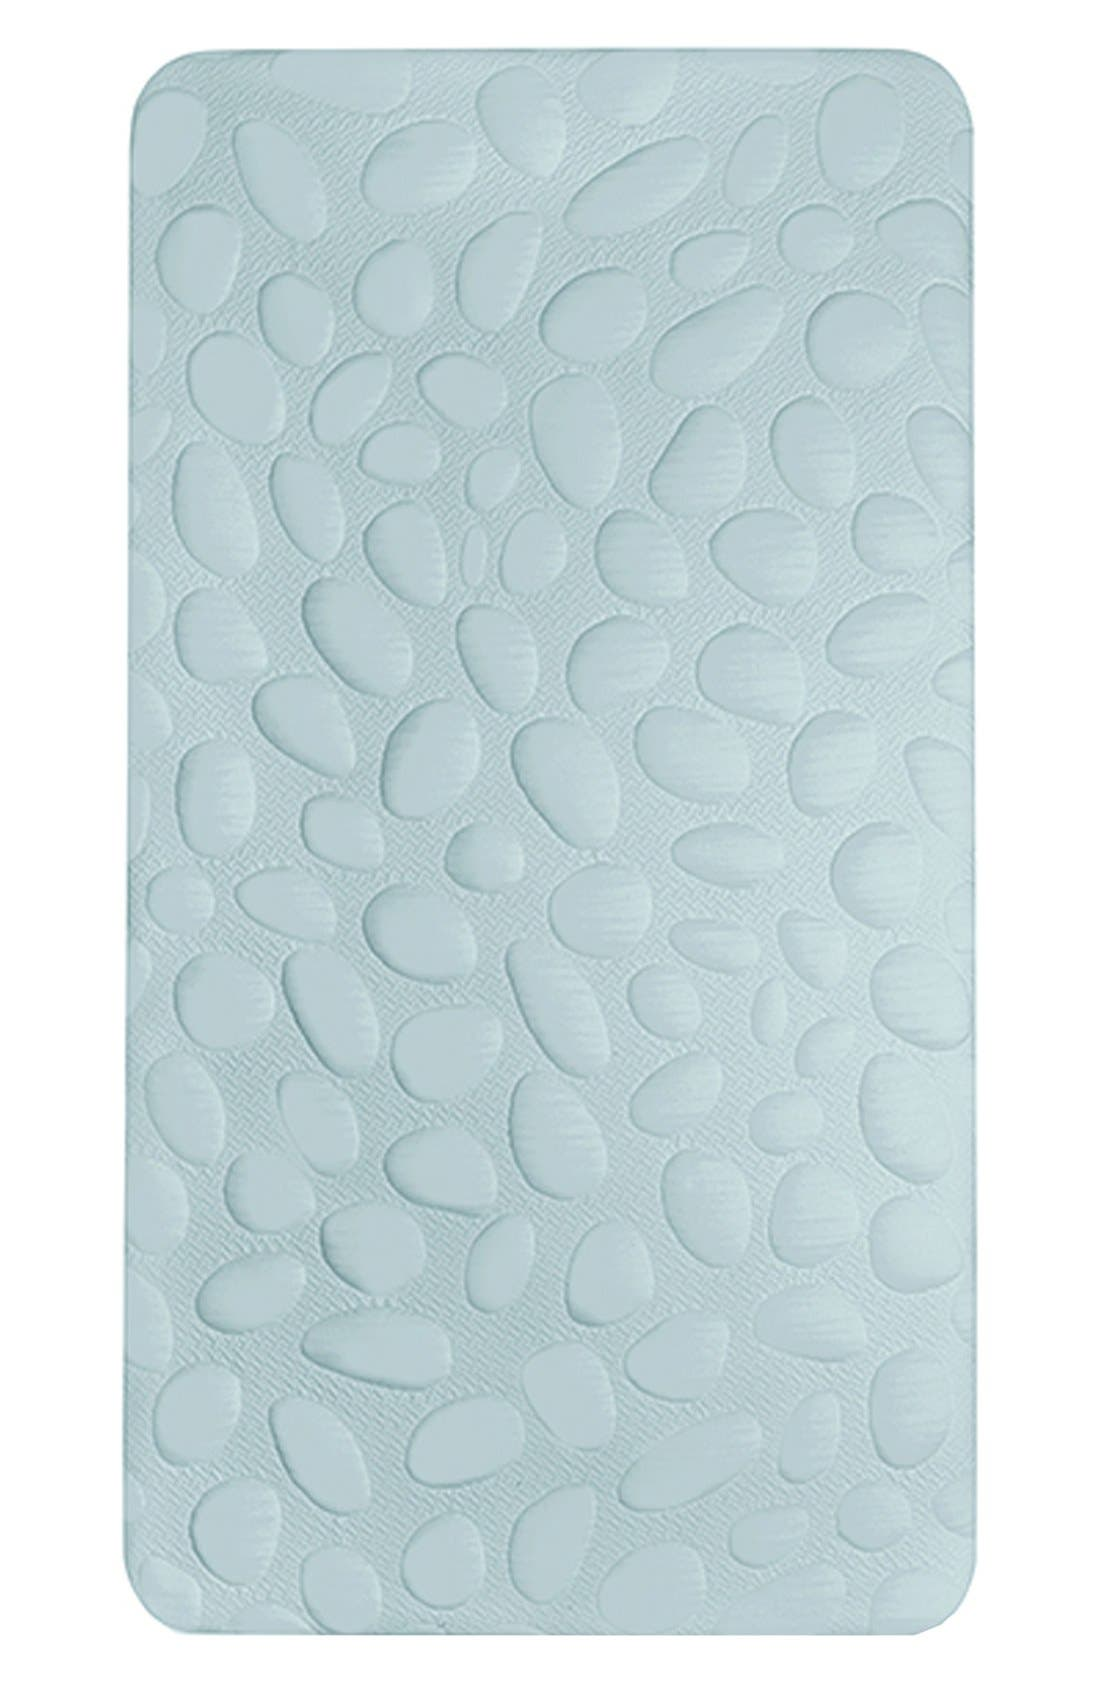 'Pebble Air' Crib Mattress,                             Main thumbnail 1, color,                             Sea Glass